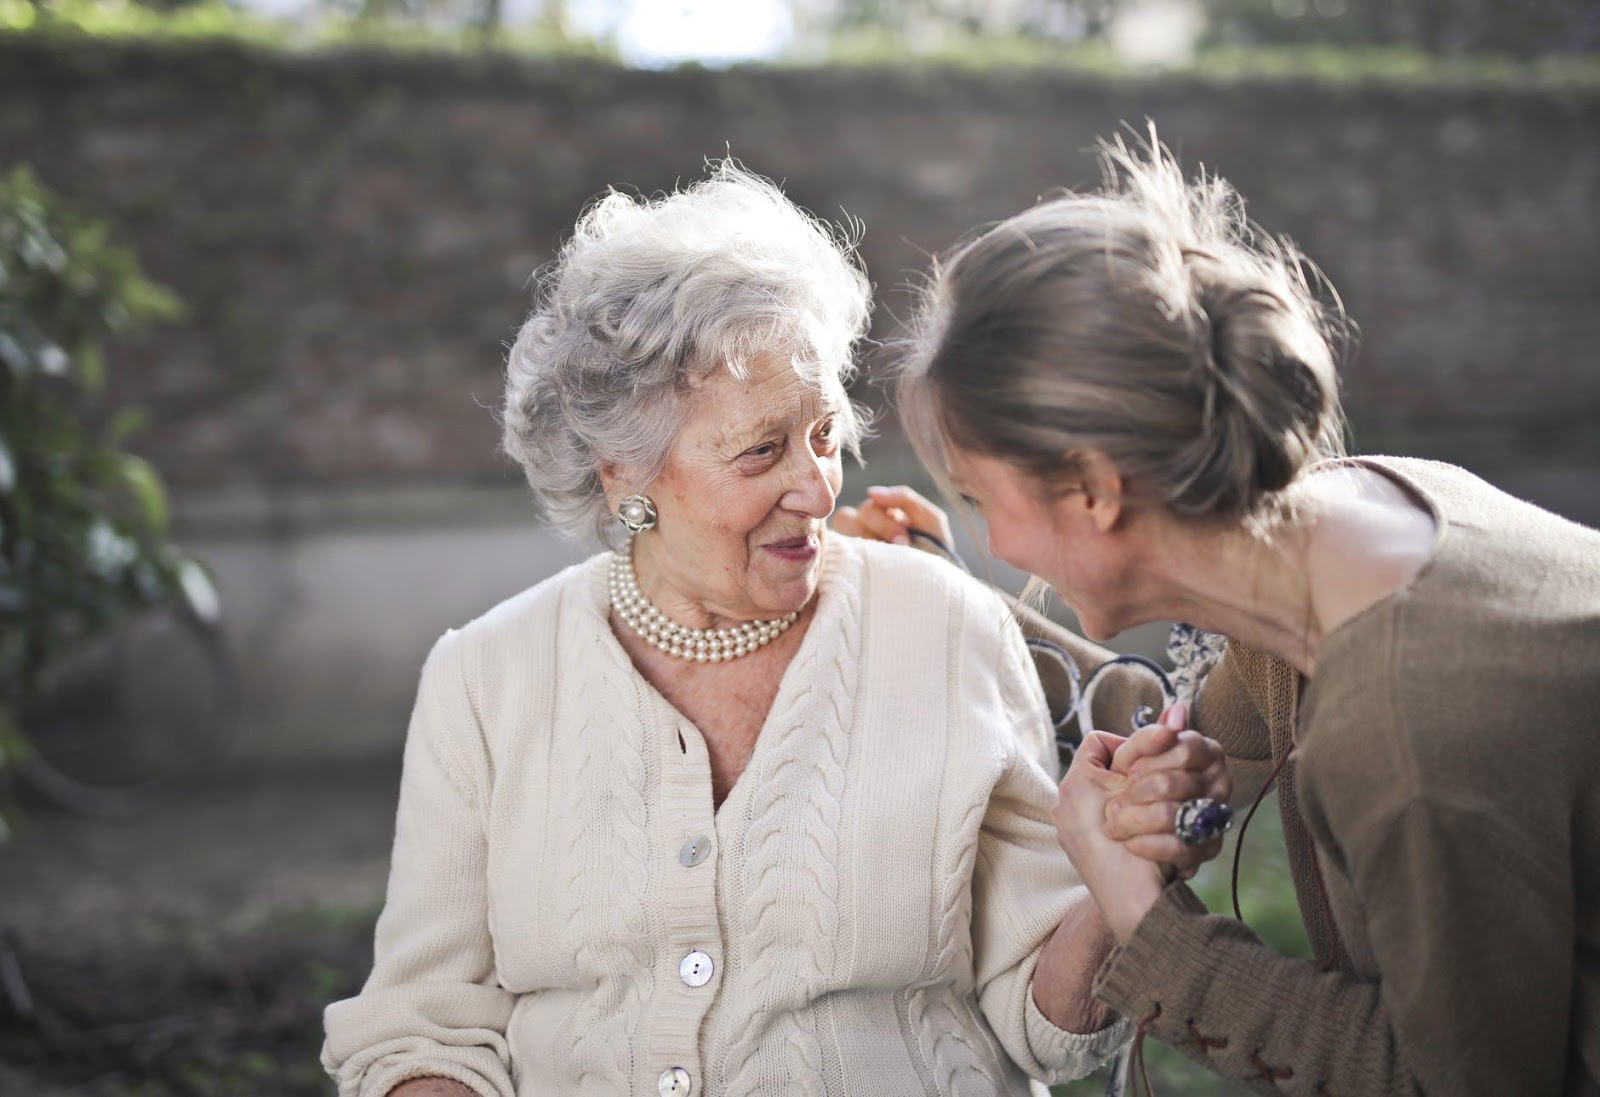 An elderly woman smiles at her caregiver